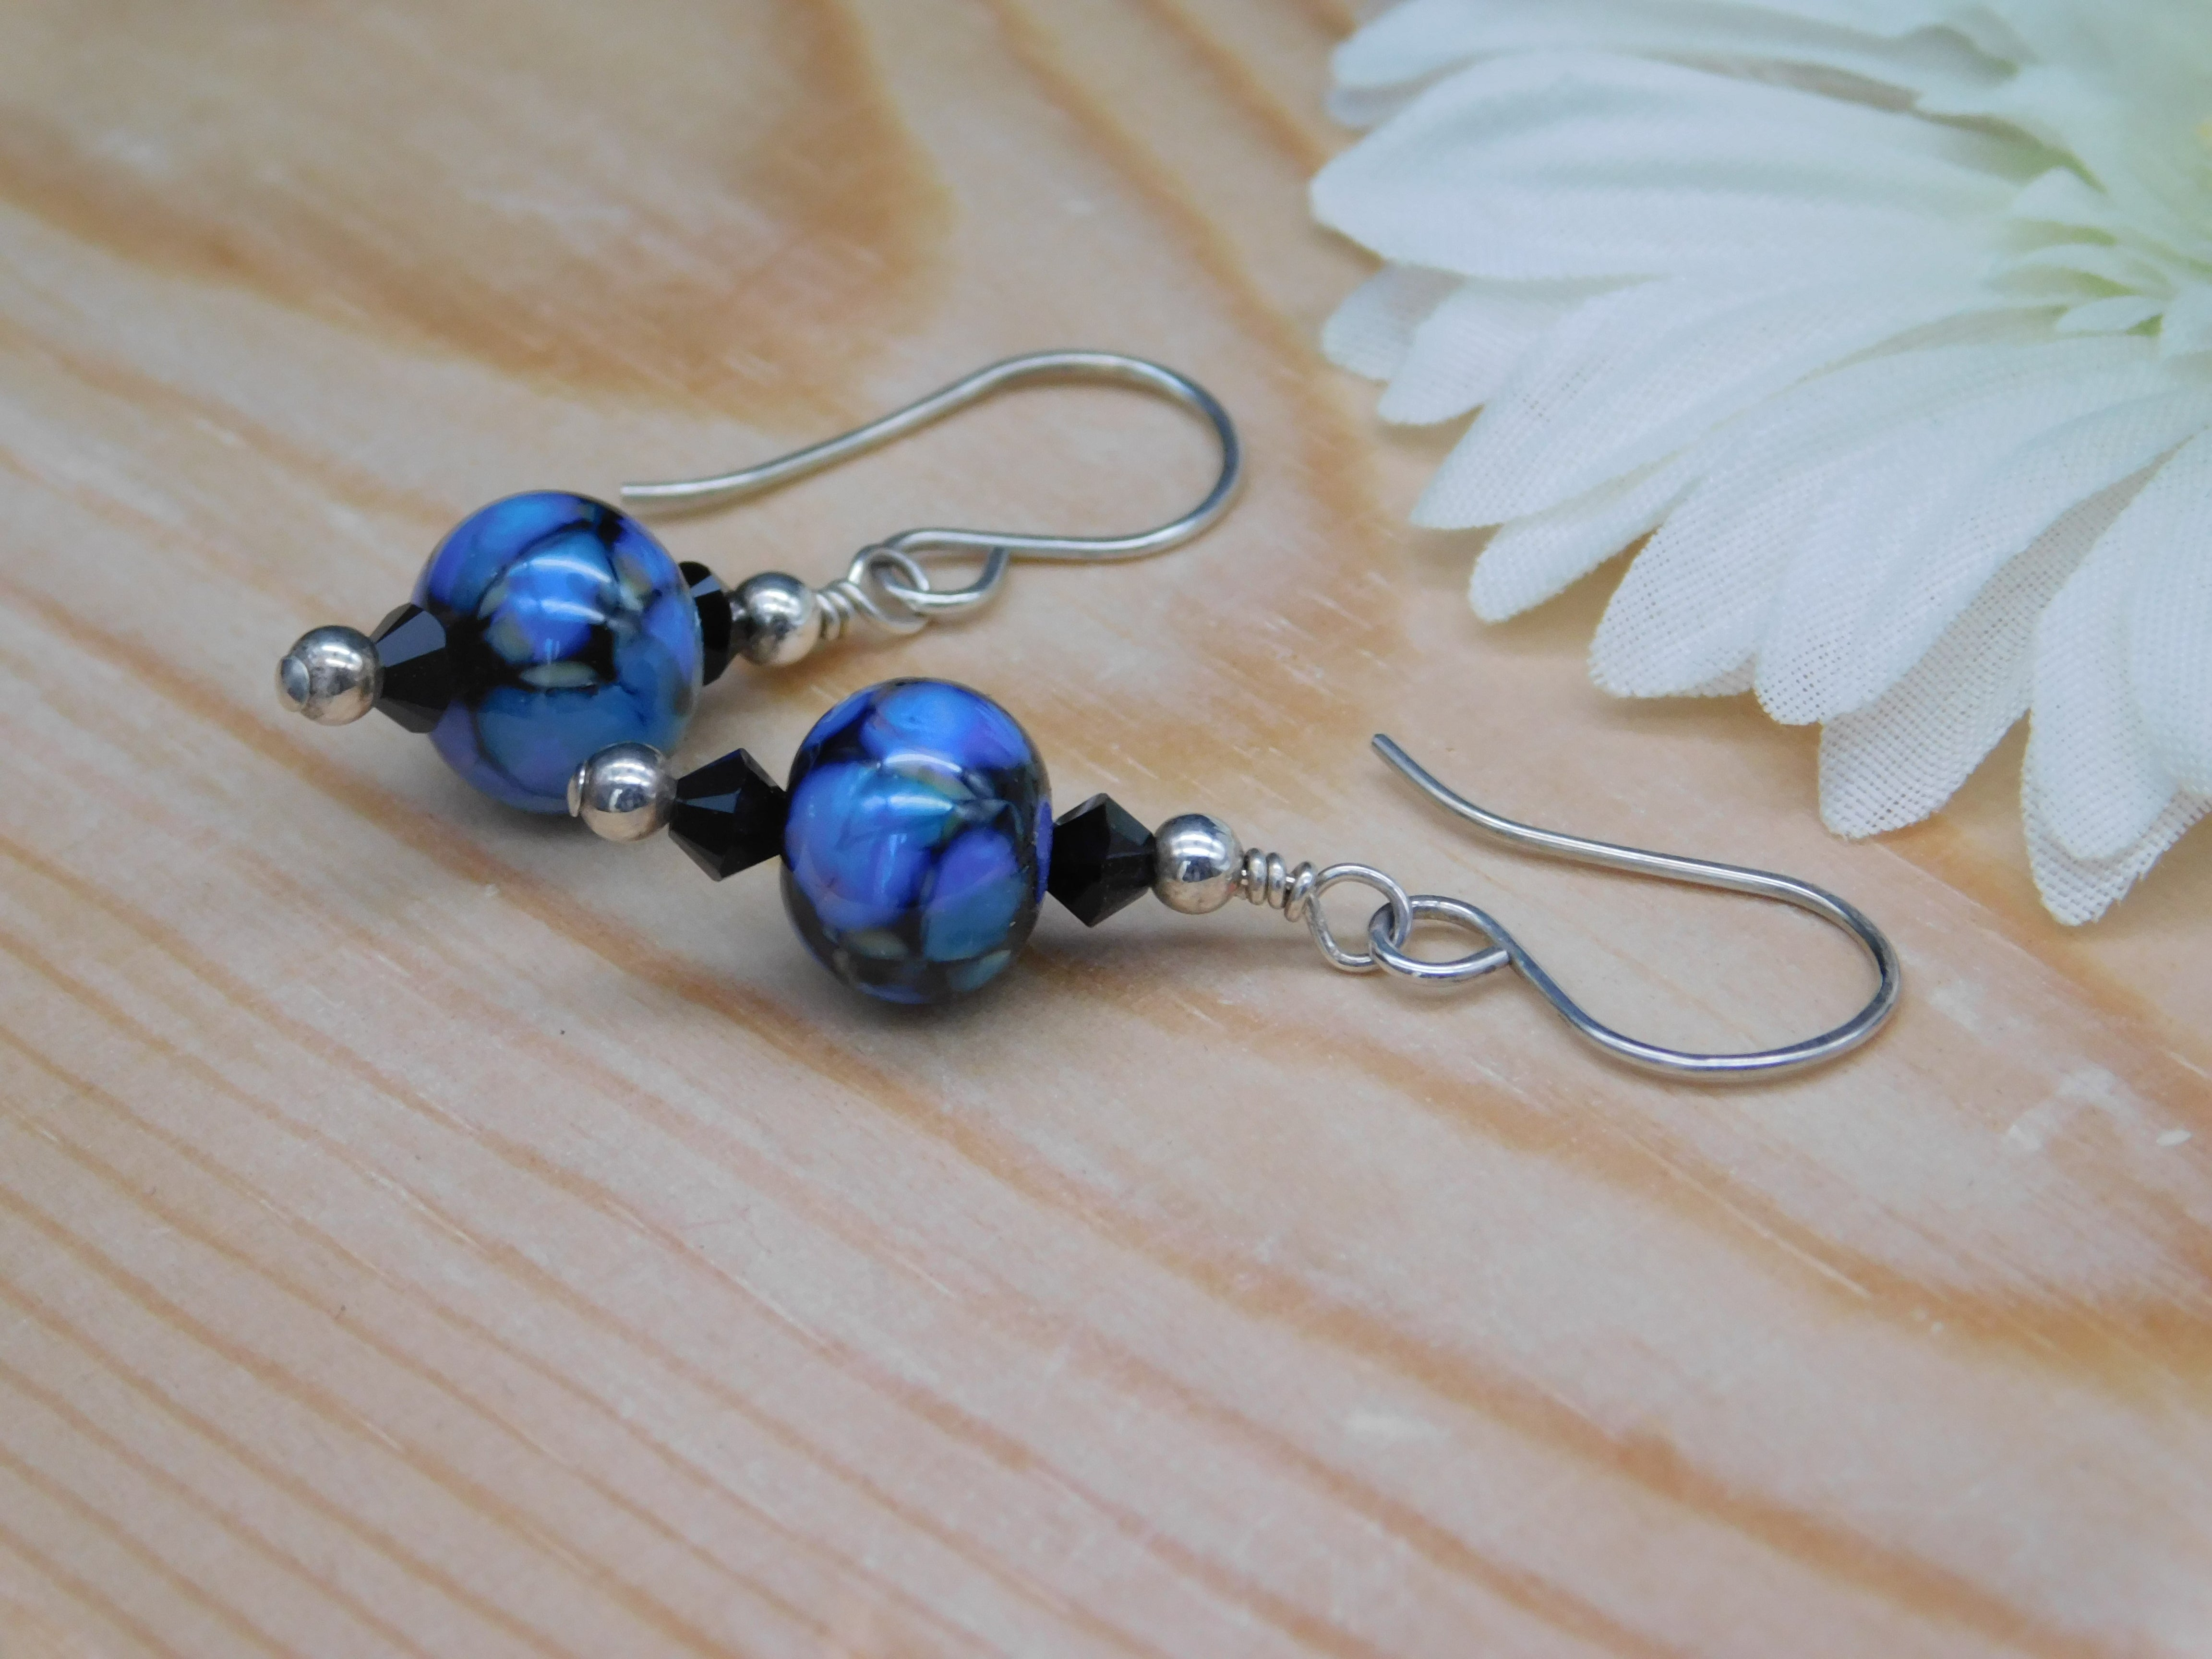 Blue Lampwork Glass Bead Earrings